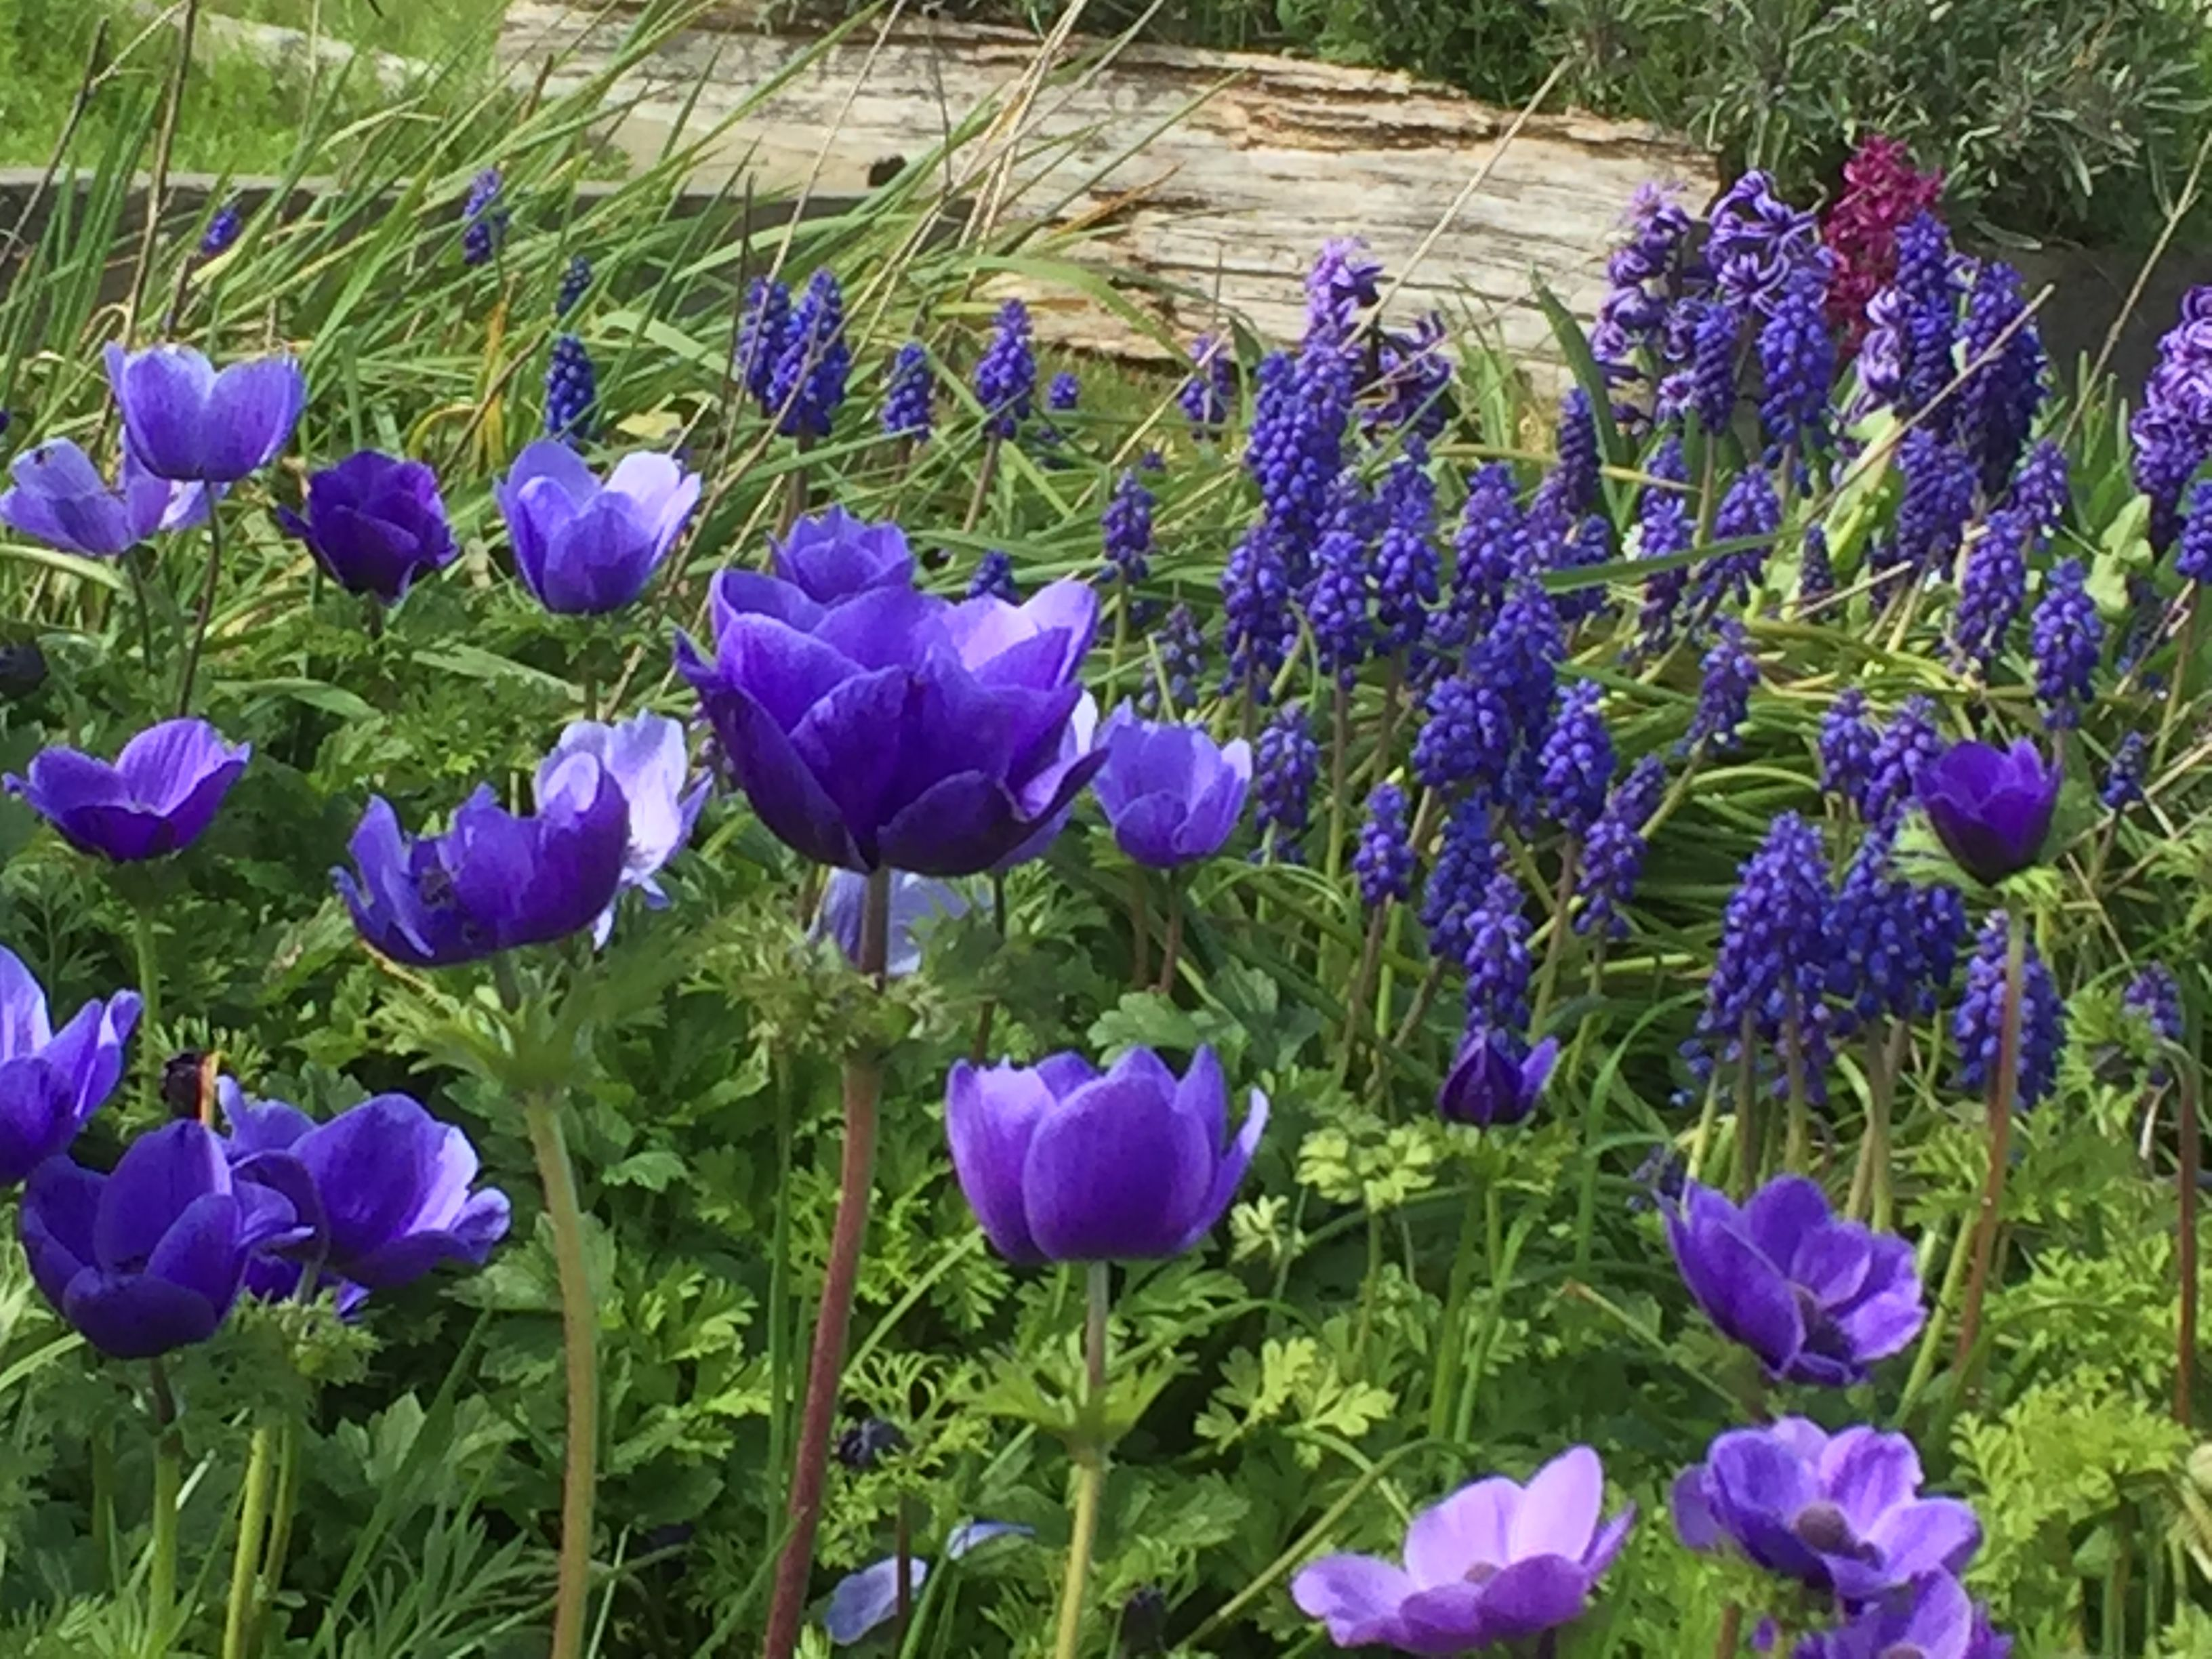 Blue Muscari And Anemone Mr Fokker Growing In The Field April Flowers Plants Muscari